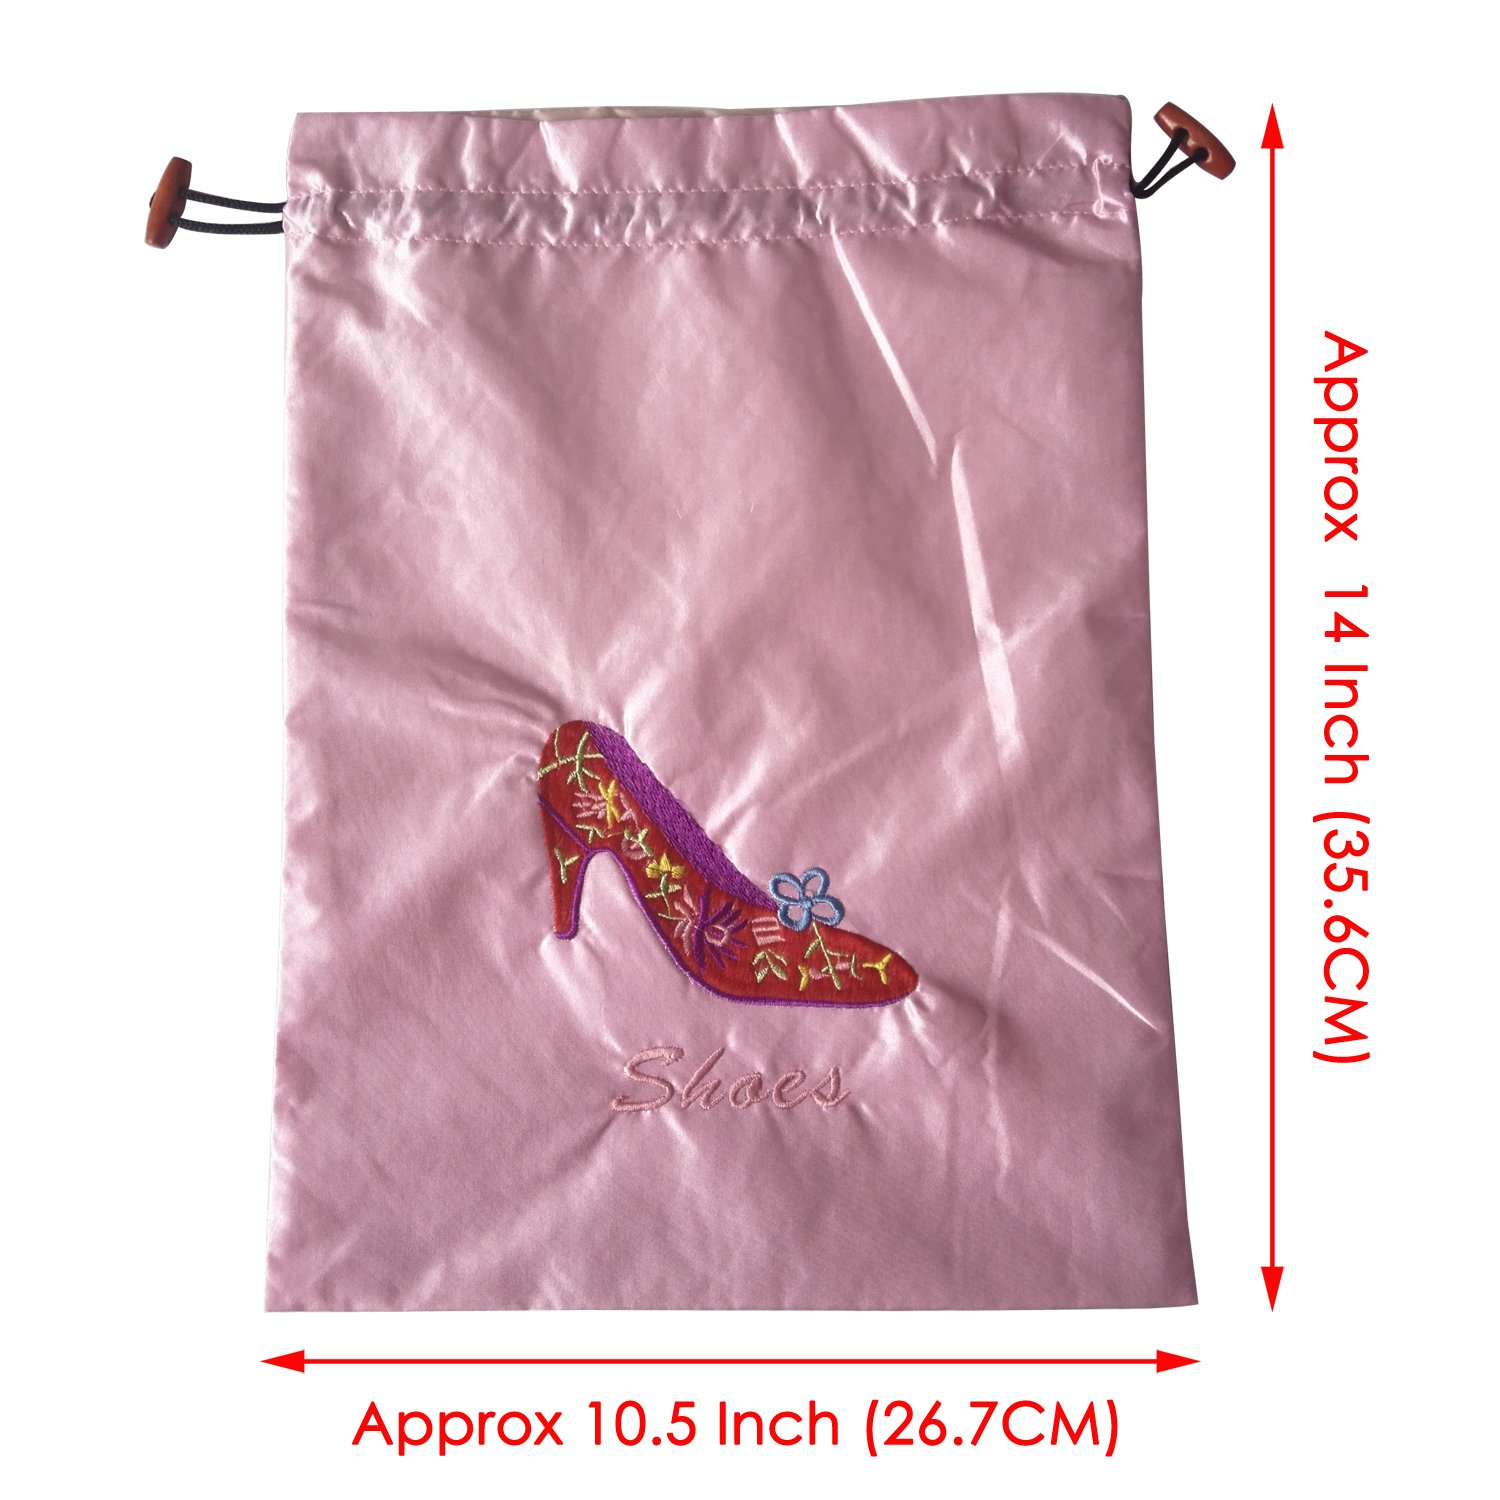 Gold Fortune 3 Packs 10.5'' x 14'' (L x W) Embroidered Silk Jacquard Travel Lingerie and Shoes Bags with Drawstring Closure (Pink) by Gold Fortune (Image #5)